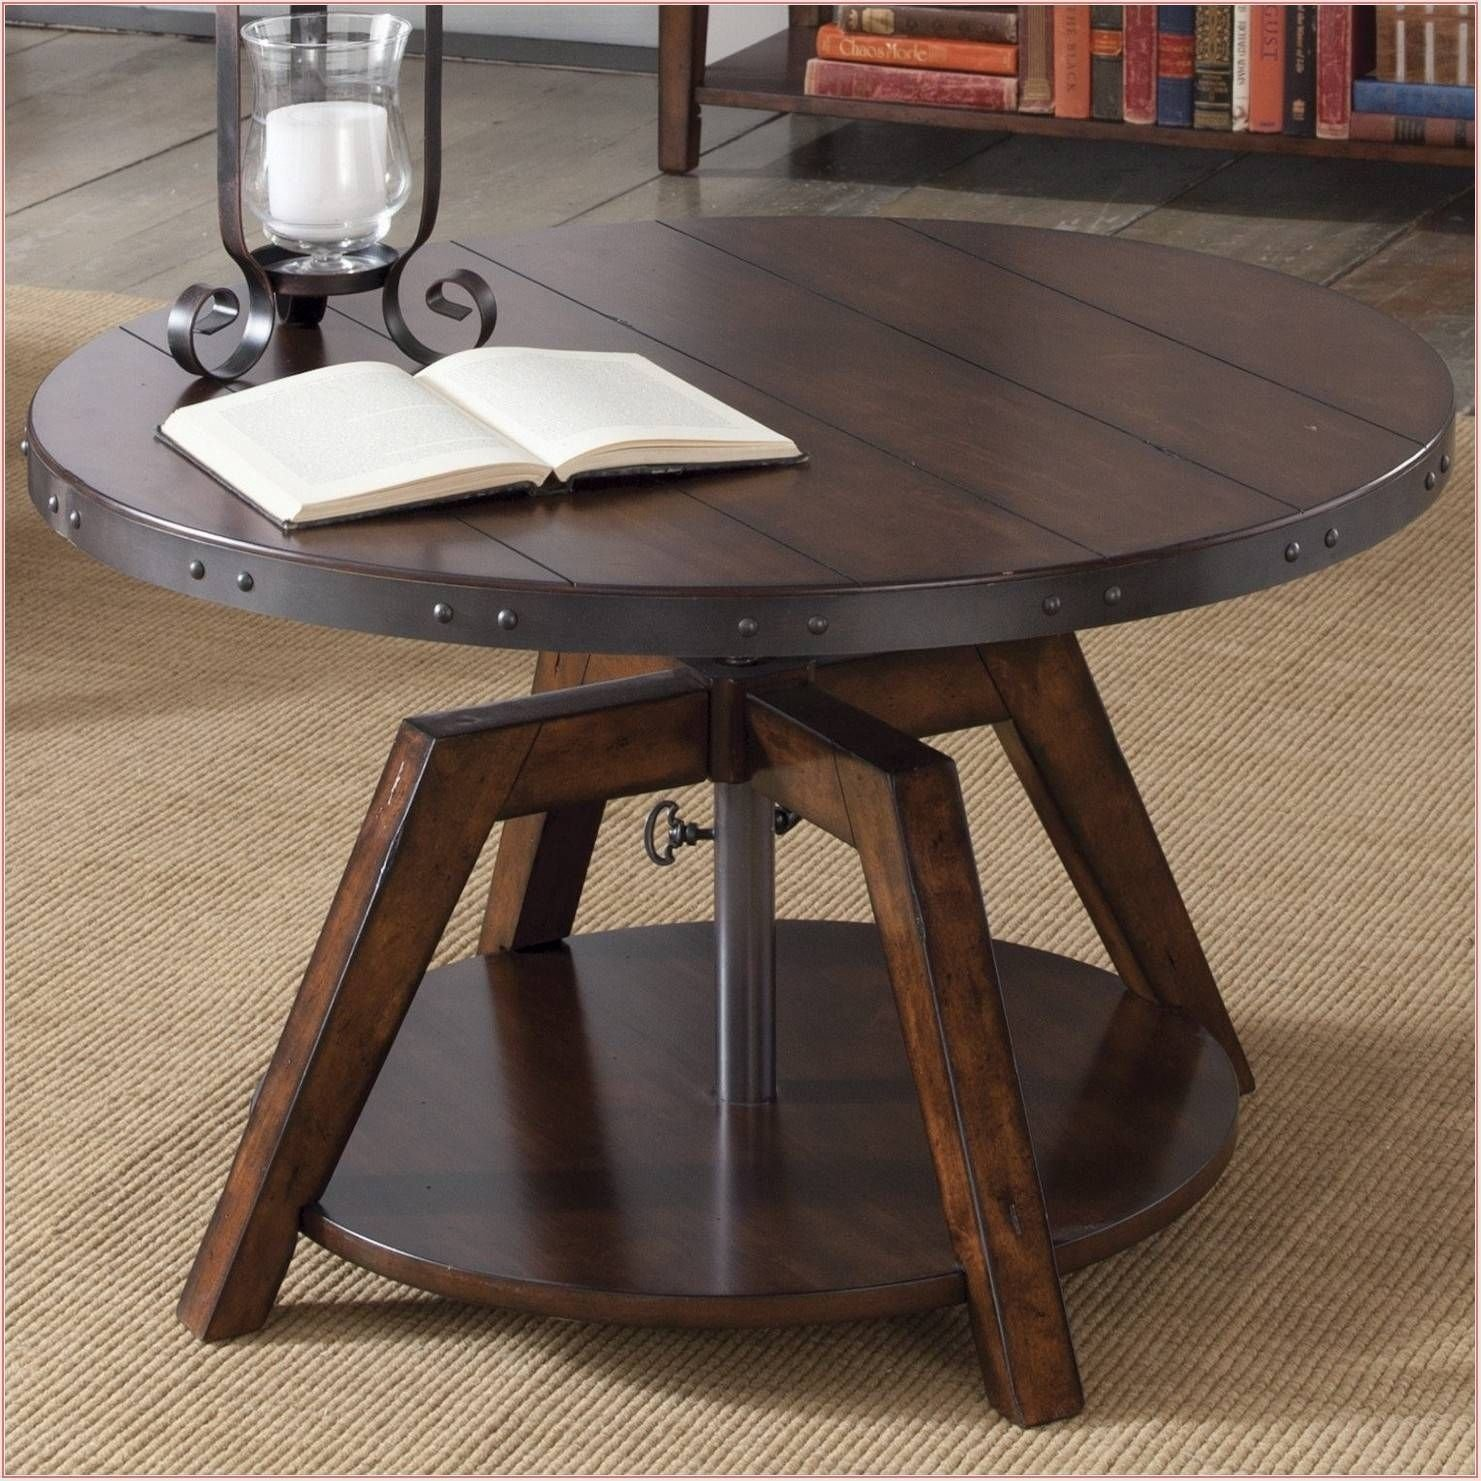 amazing convertible coffee table dining off round adjustable height low accent folding stool target black glass end the iron company entry benches furniture wood and top antique